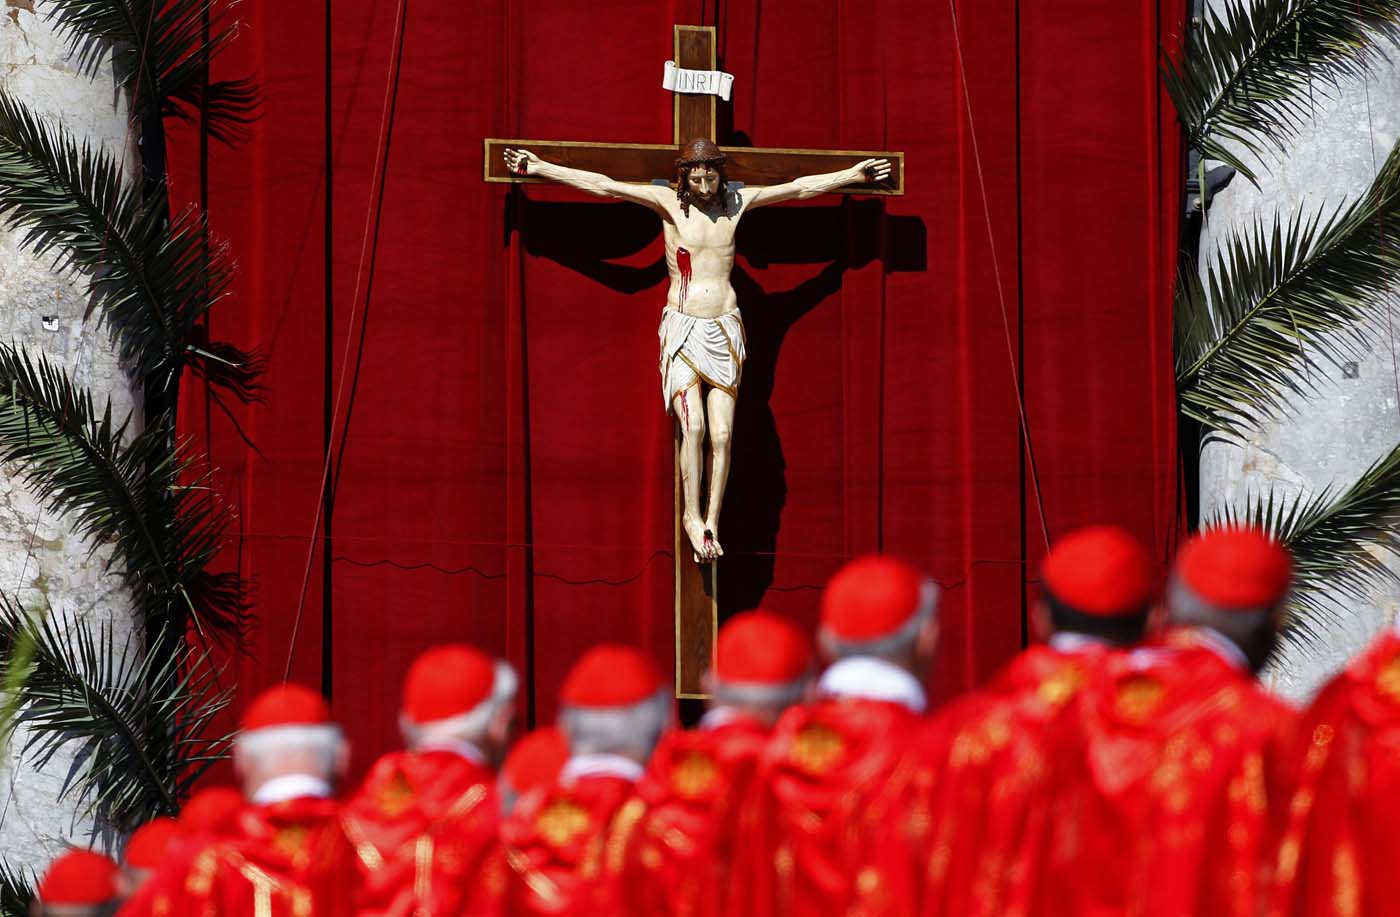 Cardinals attend the Palm Sunday Mass led by Pope Francis  in Saint Peter's Square at the Vatican April 9, 2017. REUTERS/Tony Gentile